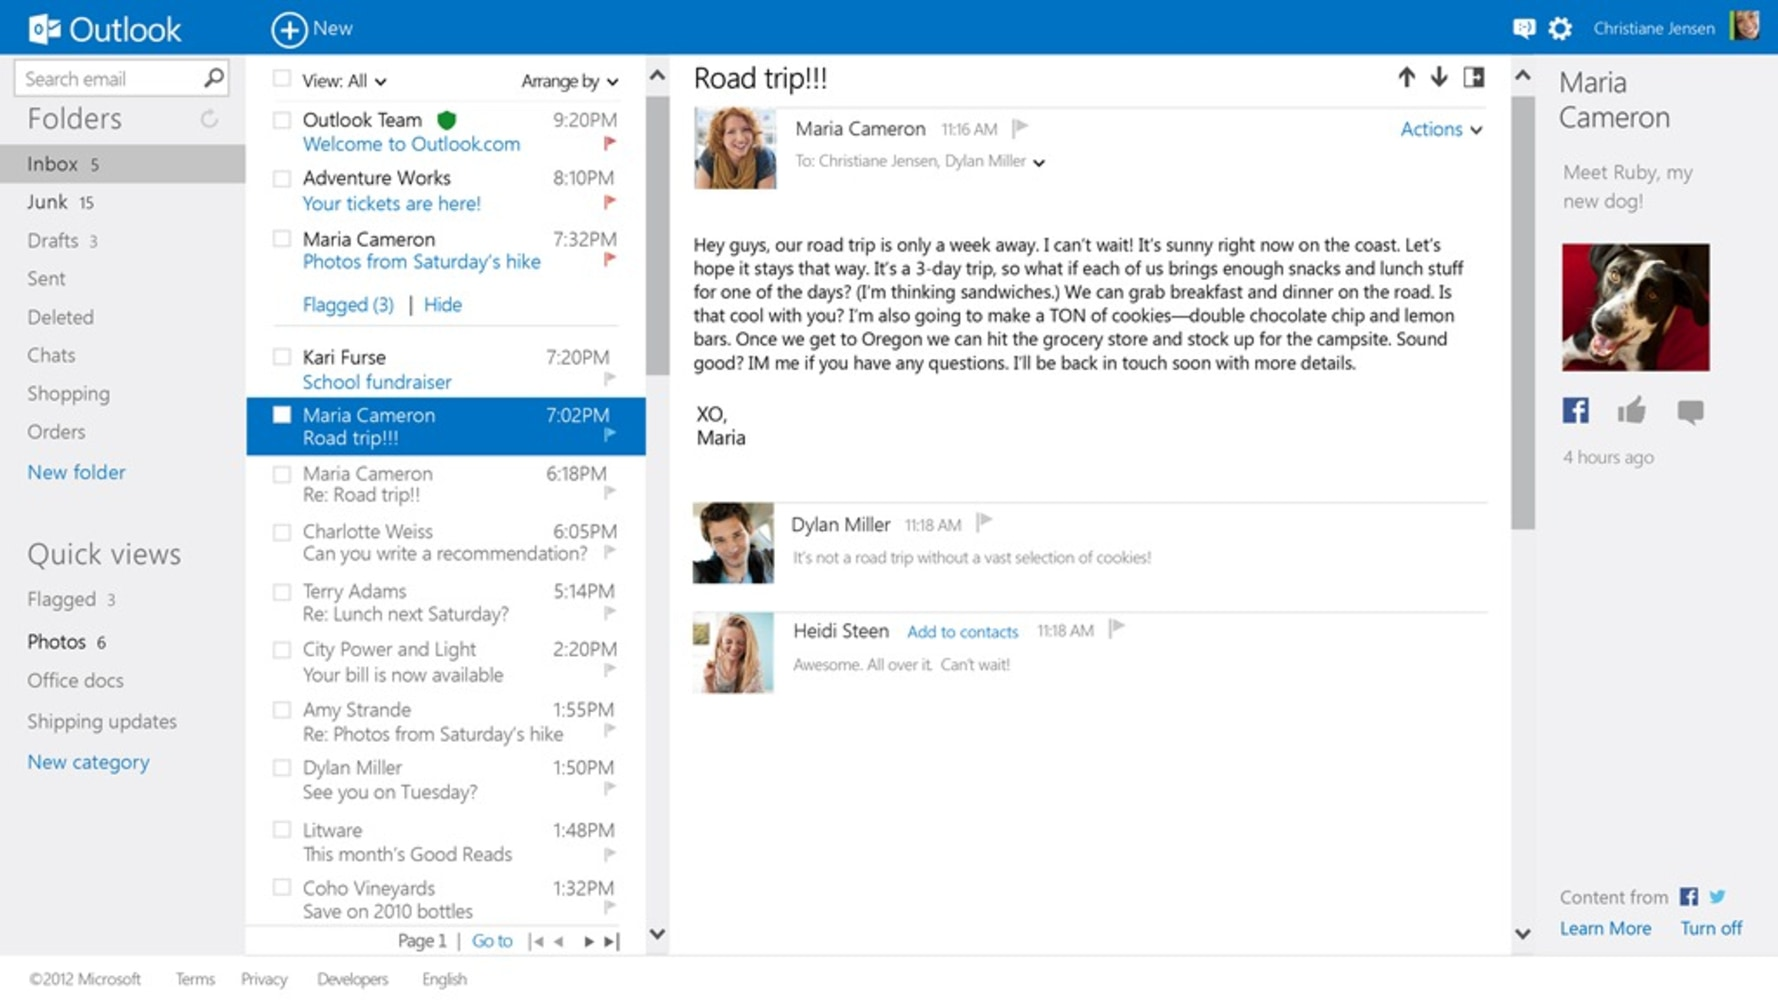 The great migration from Hotmail to Outlook.com is ...